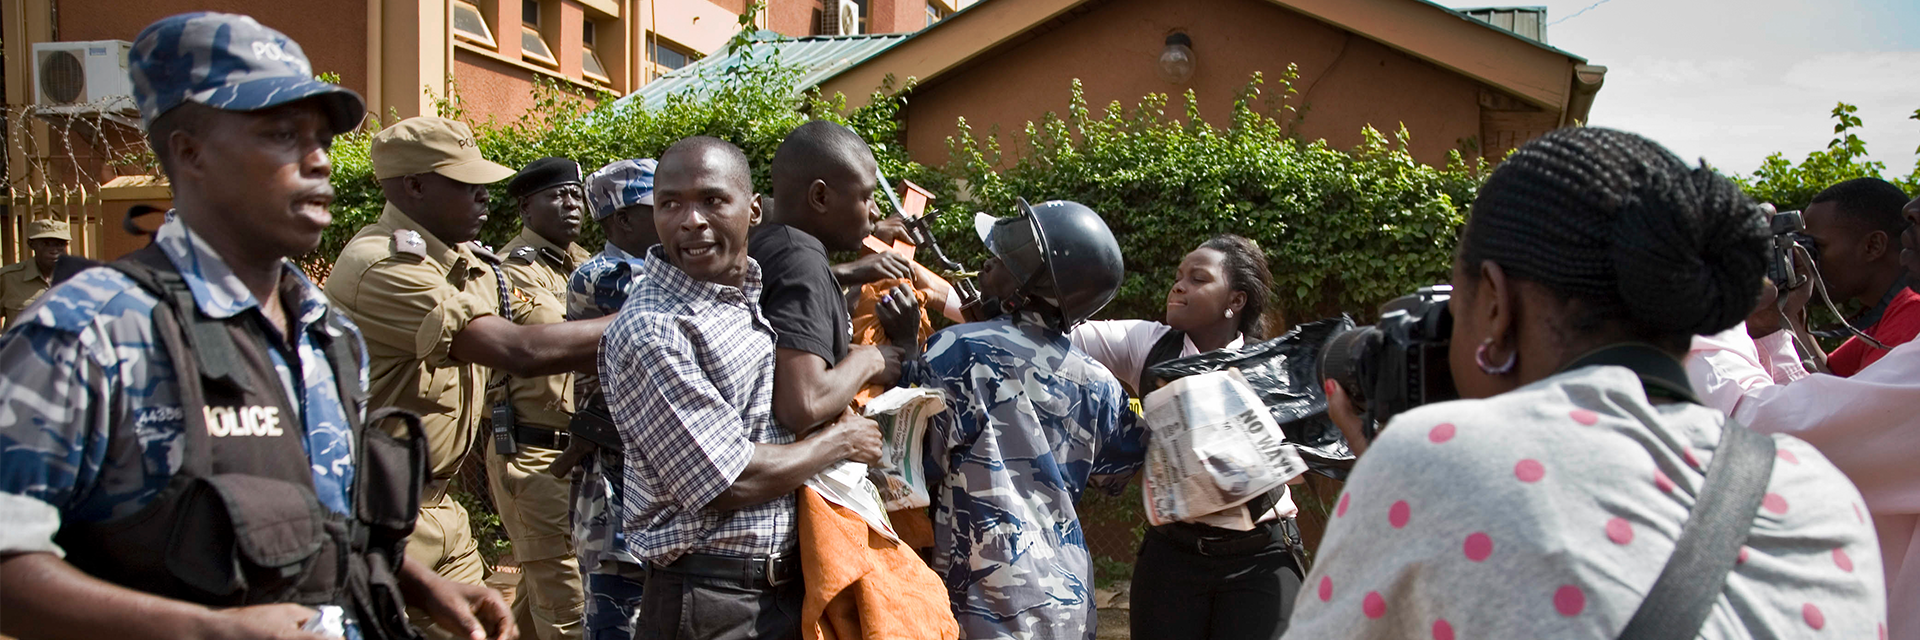 On the left: media and members of Uganda's Human Rights Network for Journalists struggling with police; on the right: person photographing the clashes